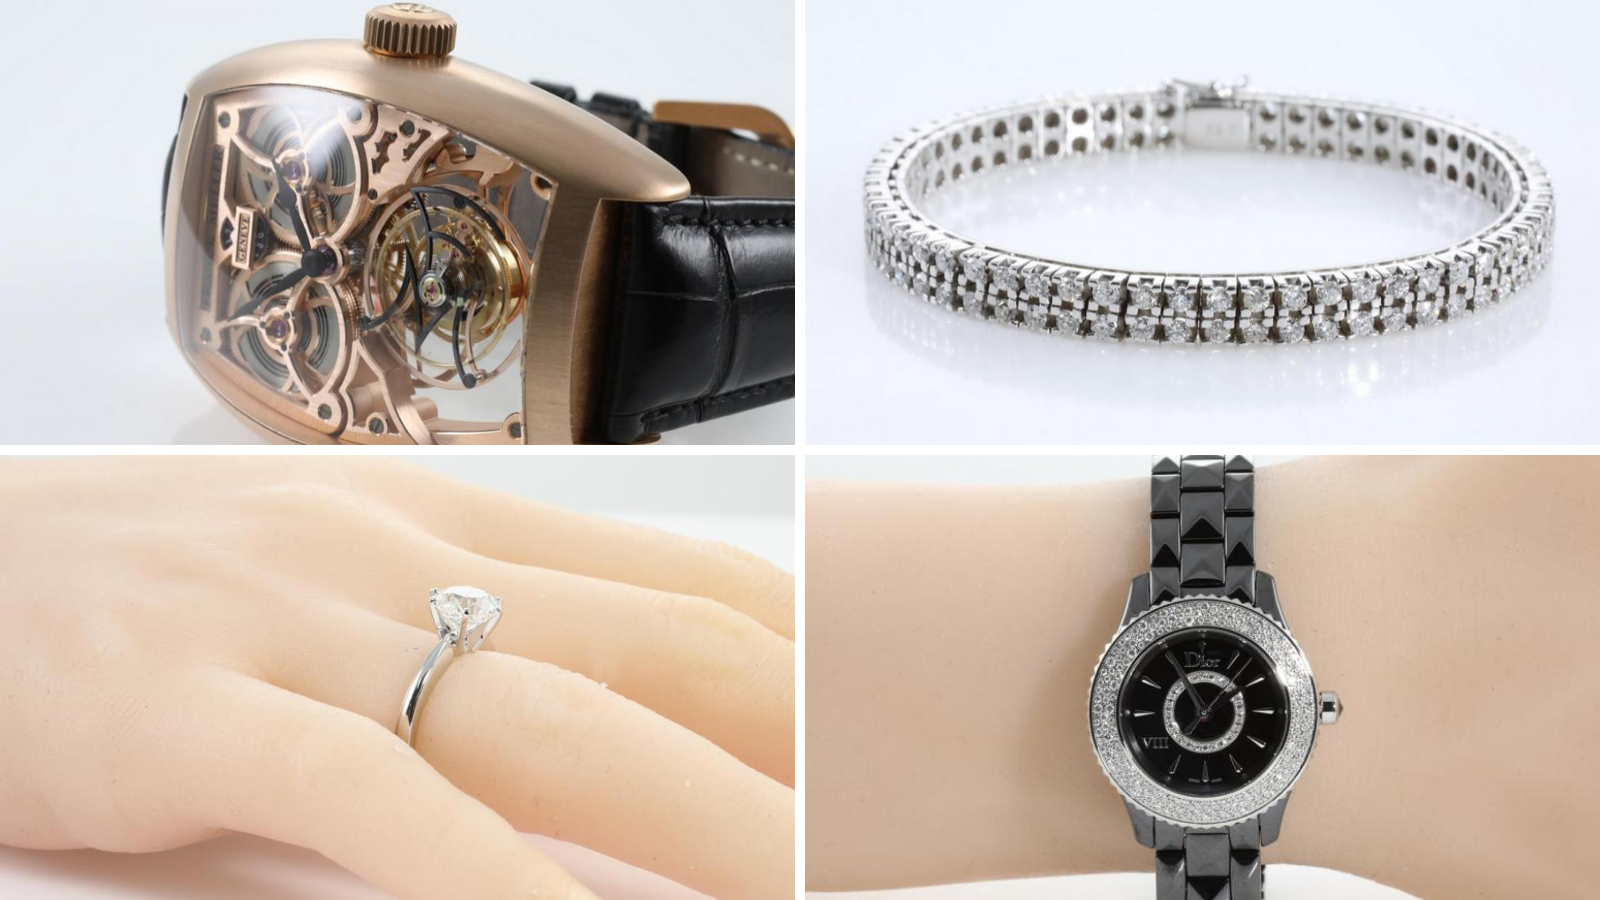 Rolex, Cartier: How stolen jewellery can be yours